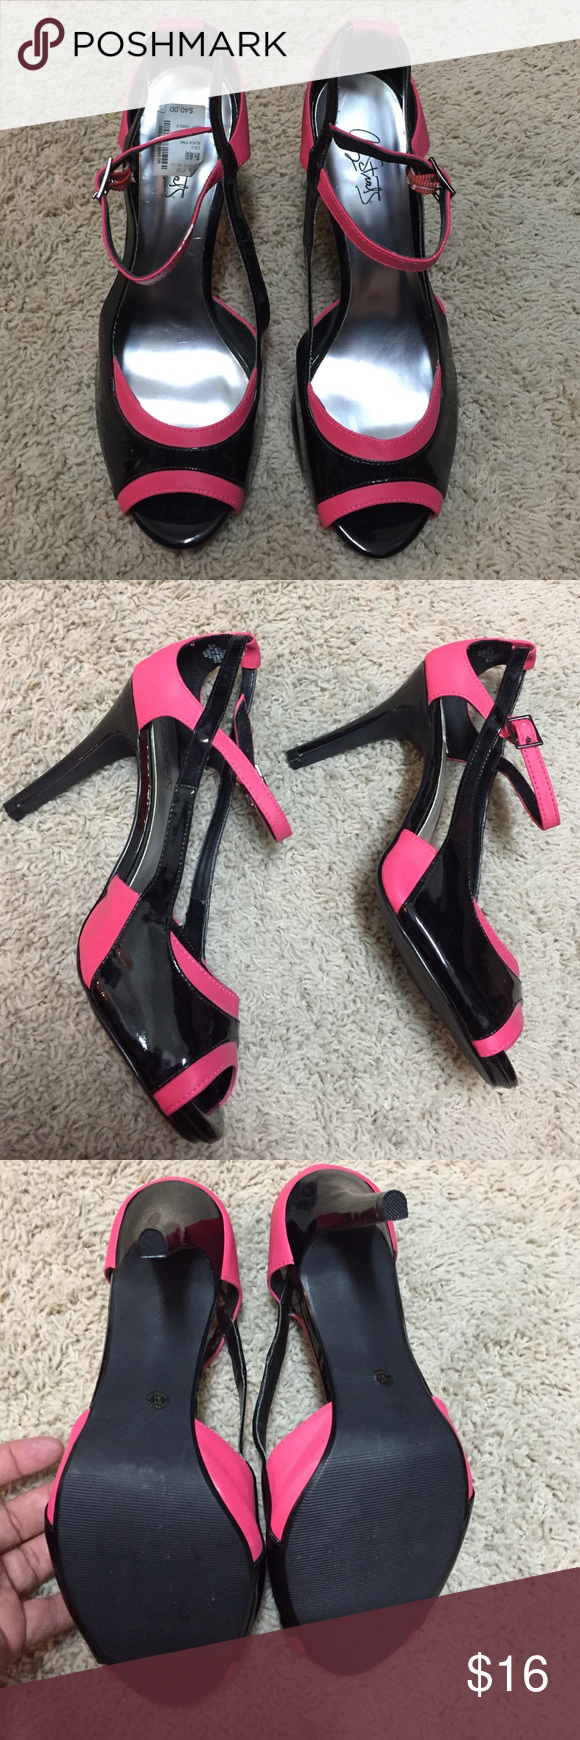 Sexy City Streets Lulu heels for women size 8.5 M Used ones in great condition. Feel free to ask me any questions that you might have also bundle your favorite items to maximize your savings ❌No trades ❌‼️‼️‼️ City Streets Shoes Heels